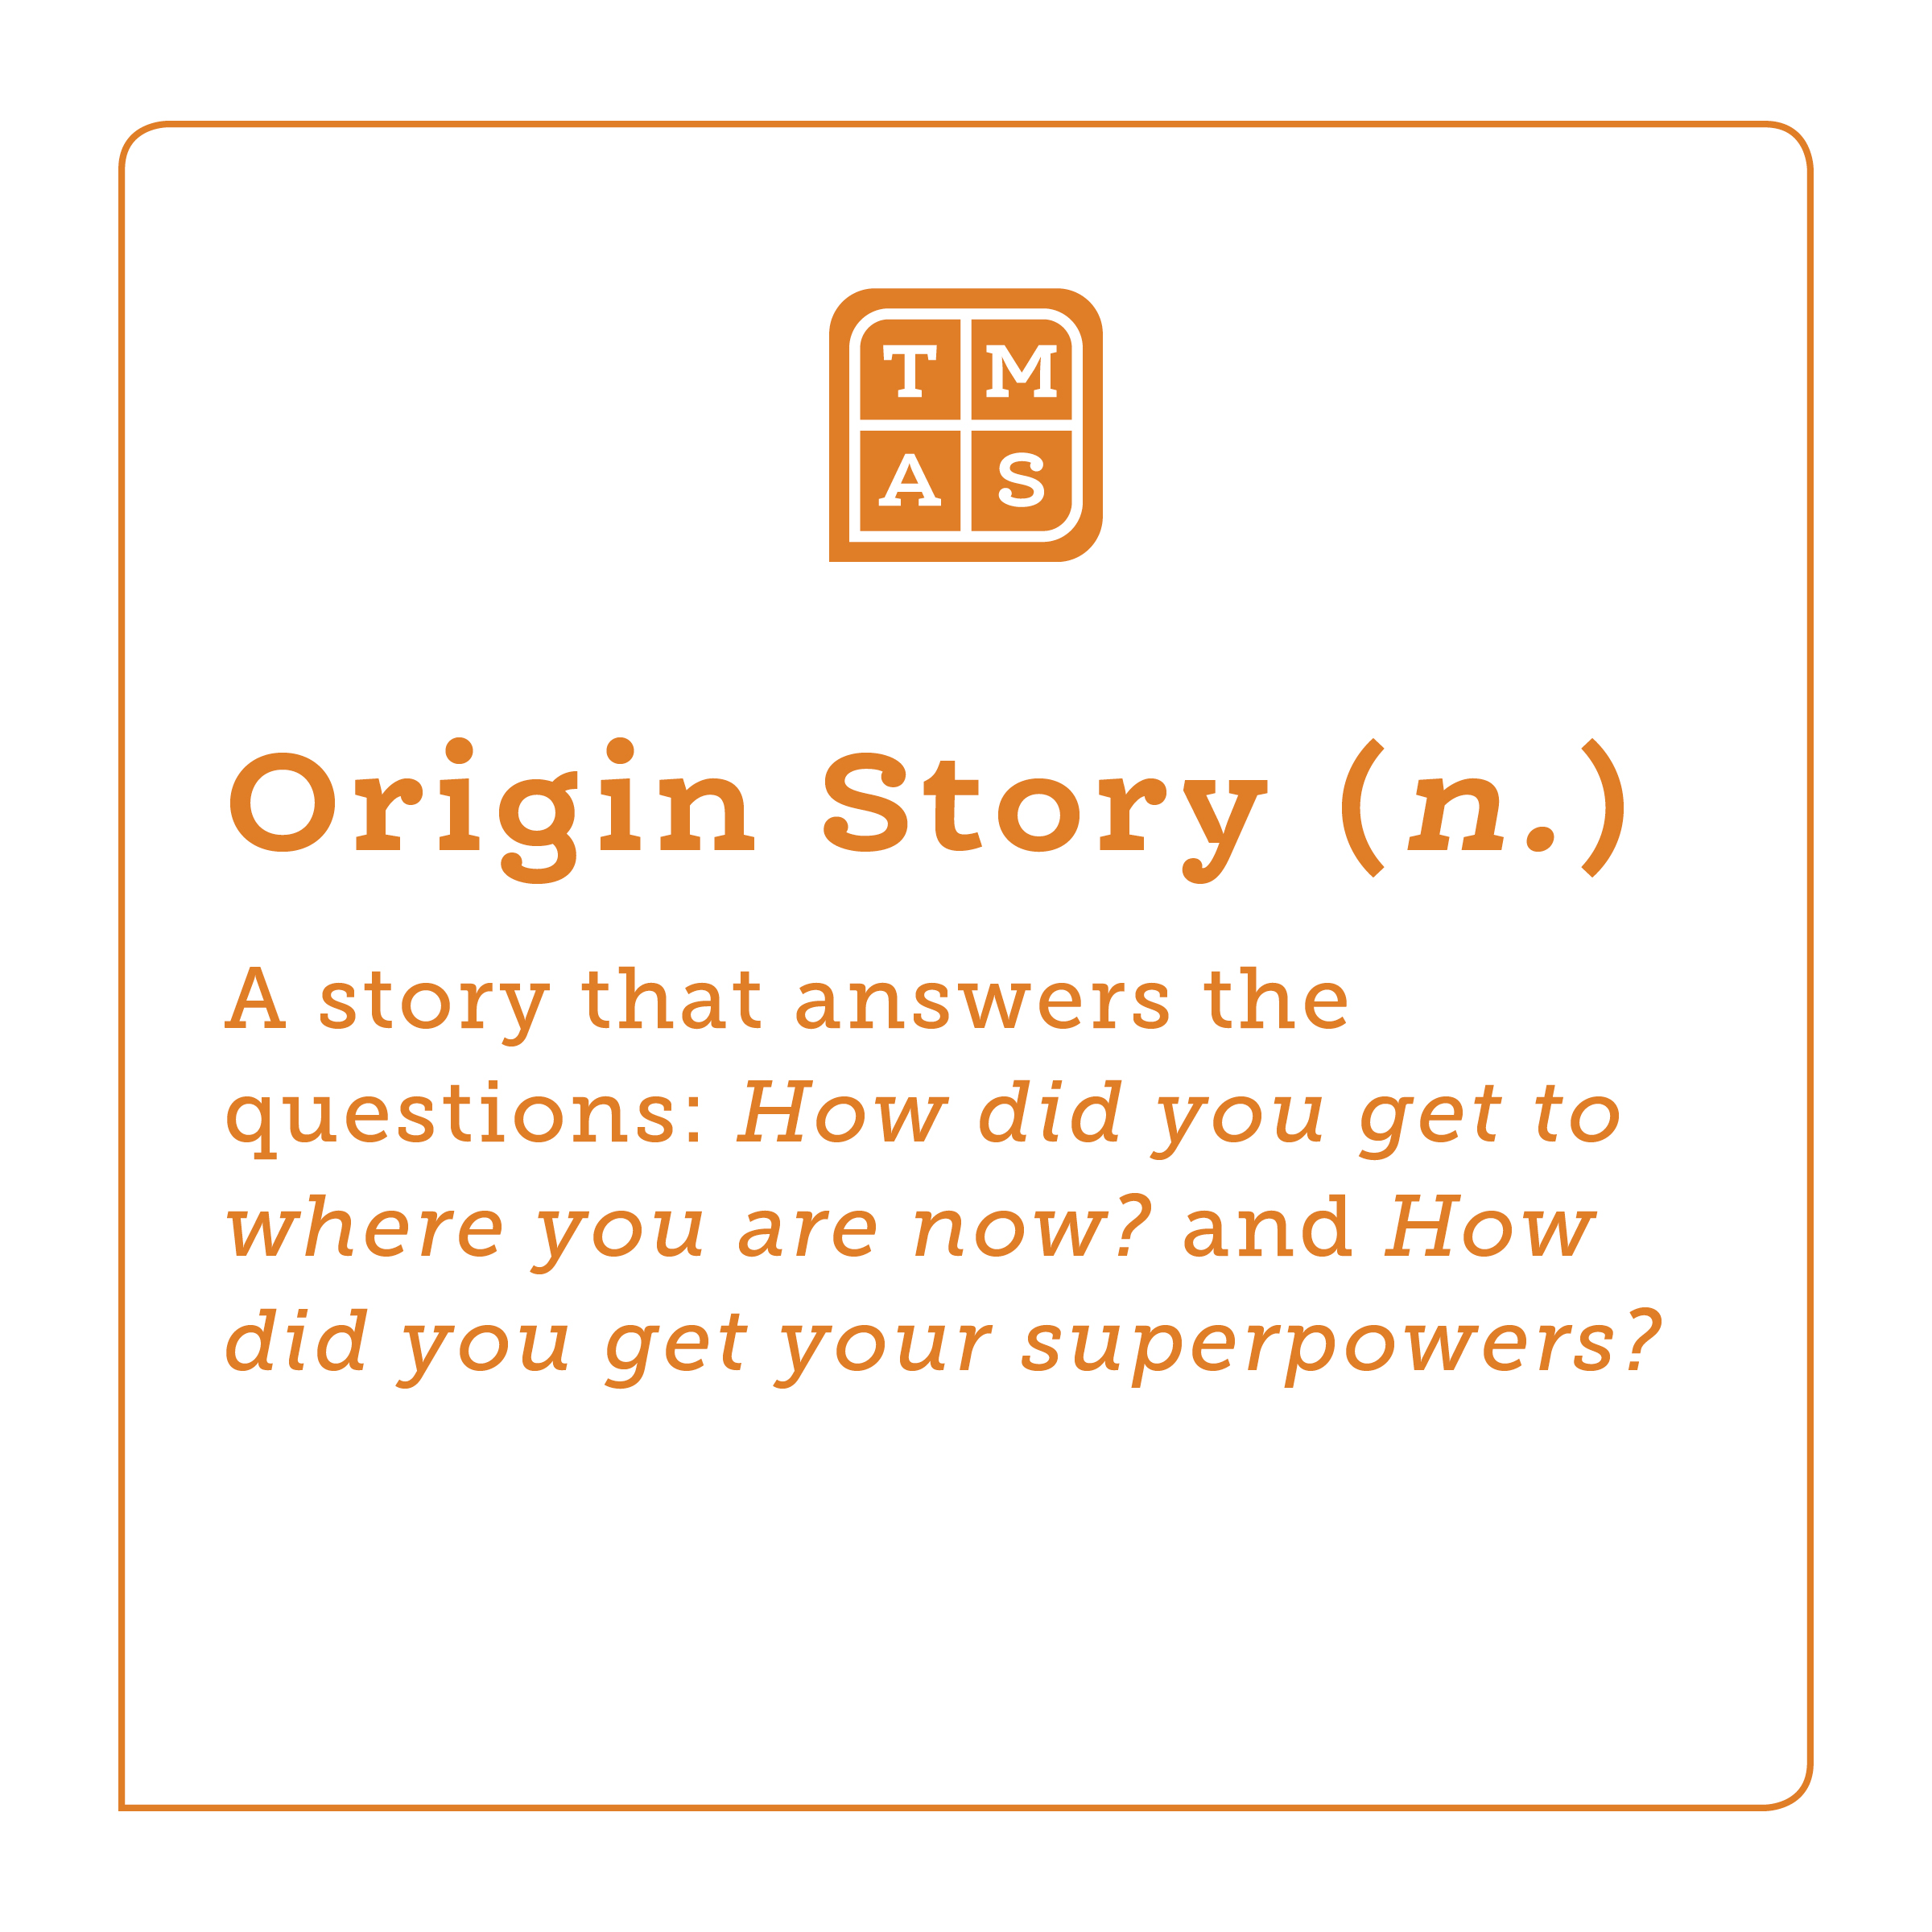 To help you hone in on your personal narrative ideas, try starting with an Origin Story. This is a story that answers the questions: How did you get to where you are now? and How did you get your superpowers?